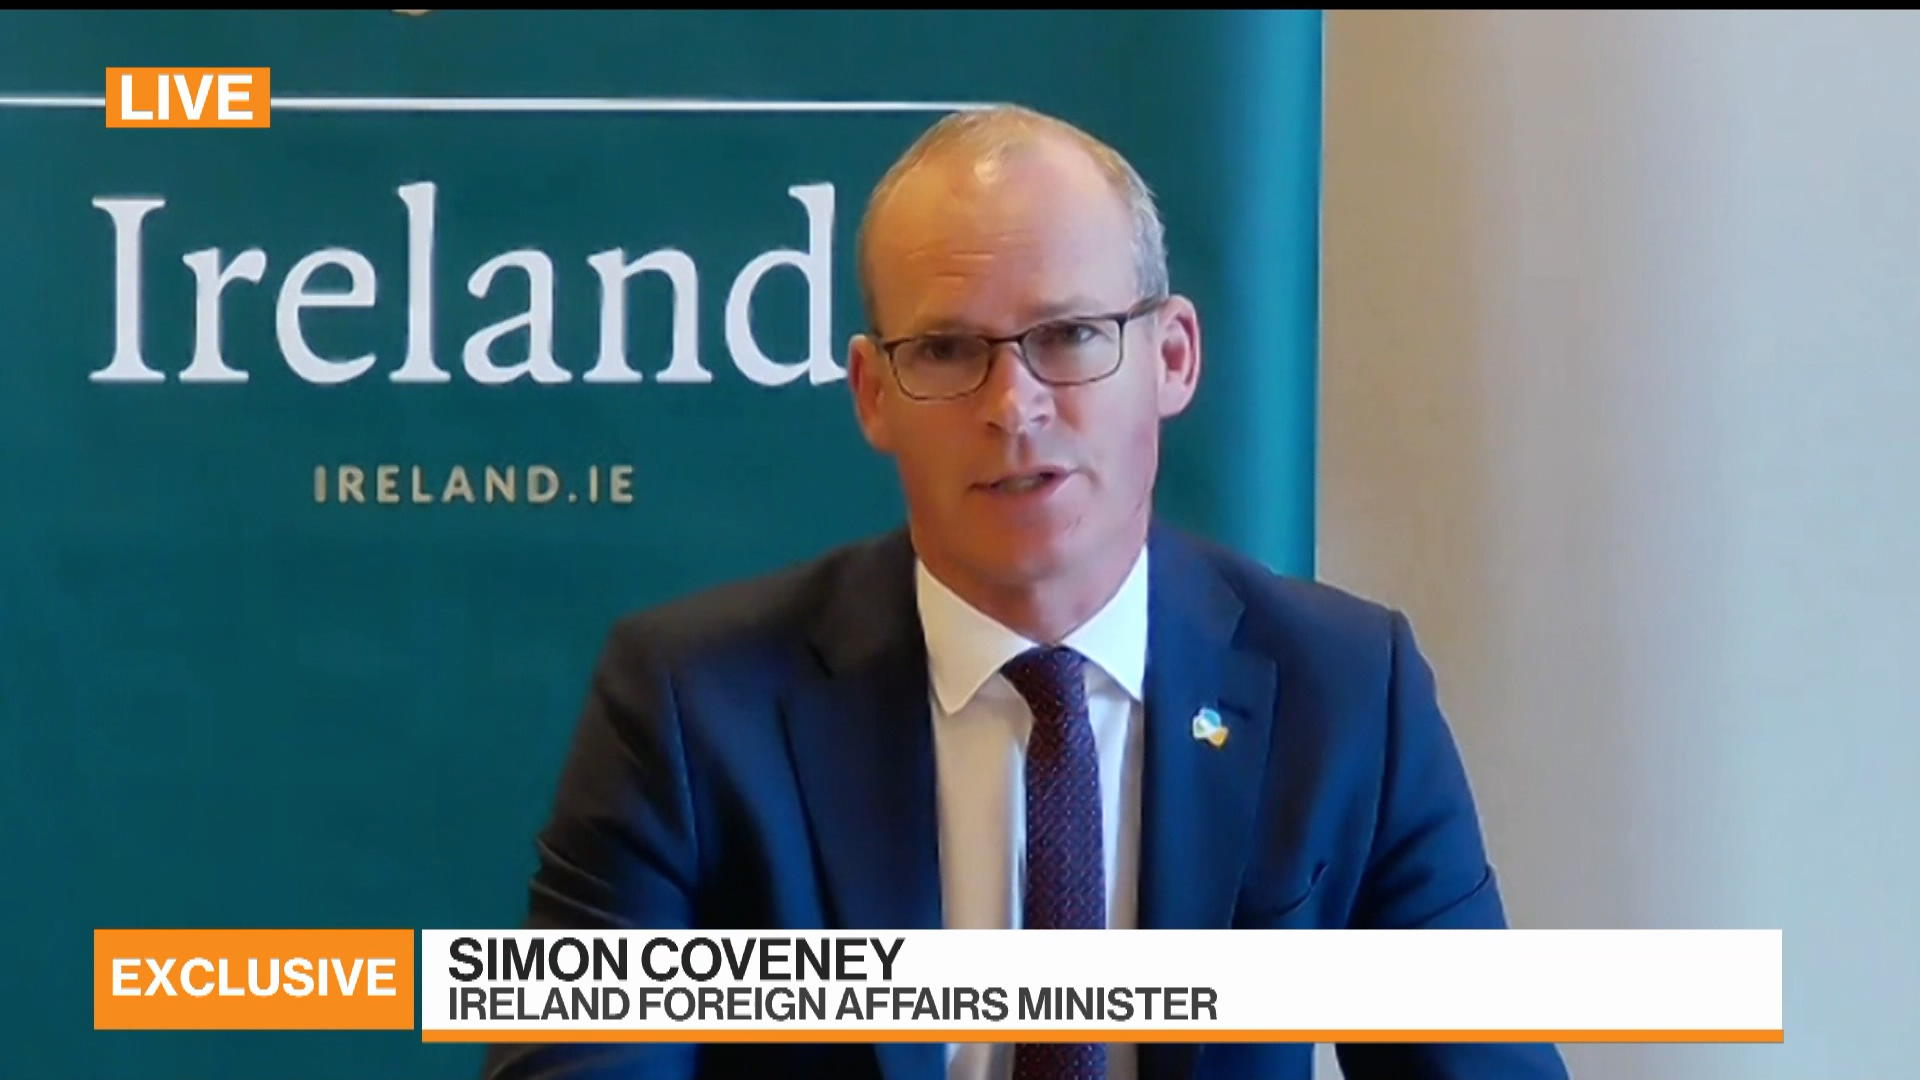 Ireland's Coveney Sees 'Good Chance' of Brexit Trade Deal